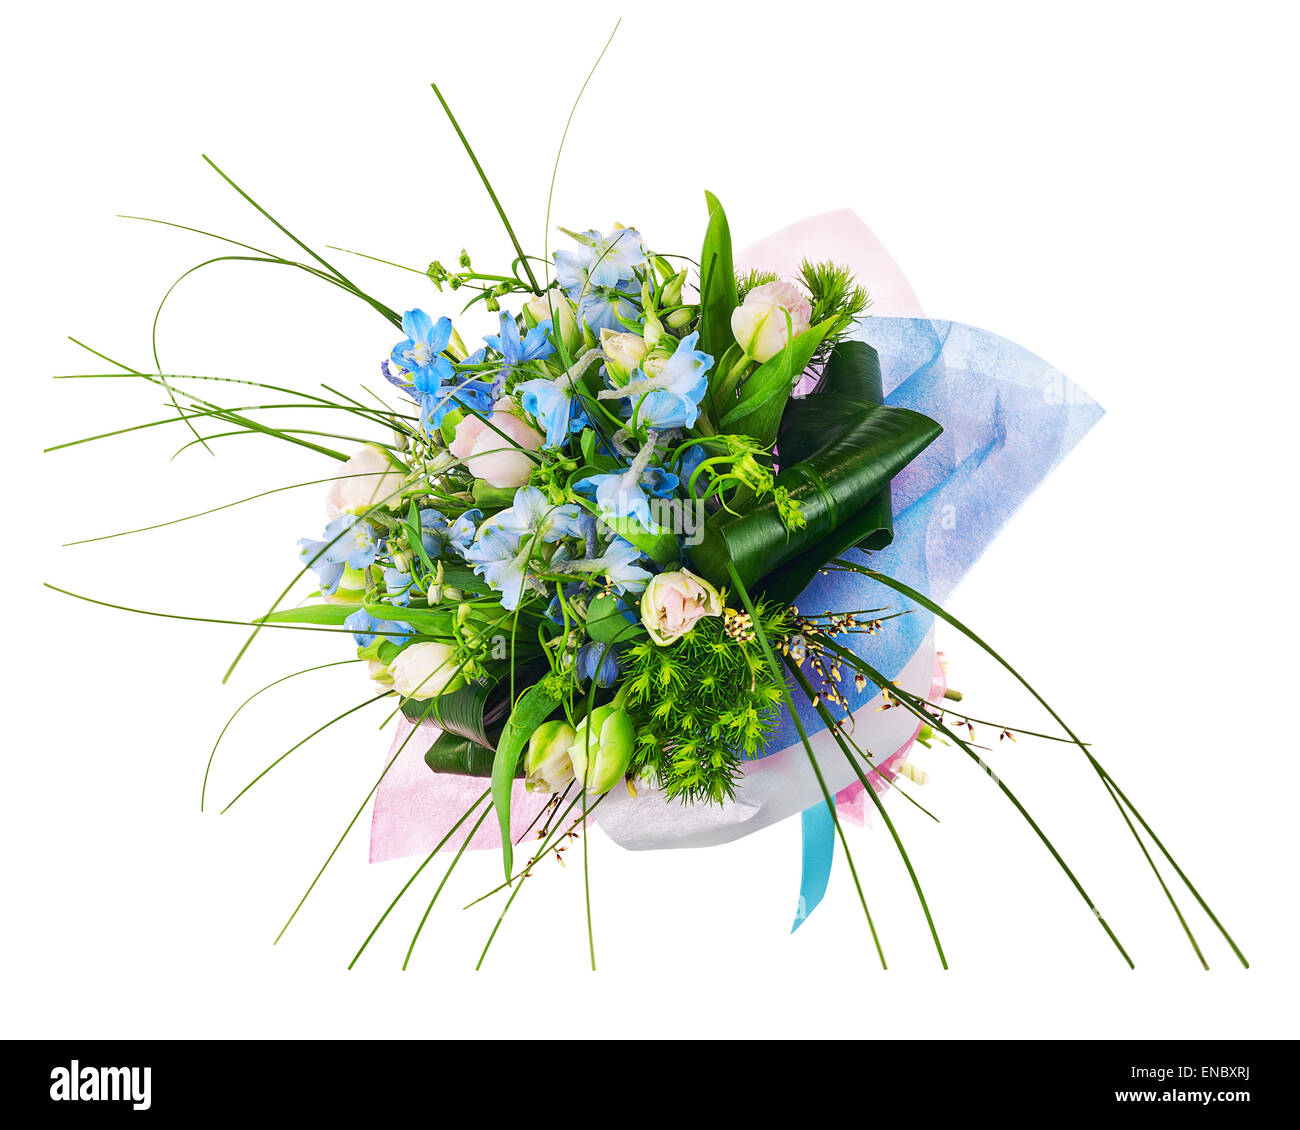 Iris centerpiece stock photos iris centerpiece stock images alamy flower bouquet from pink roses iris and other flowers arrangement centerpiece isolated on white background izmirmasajfo